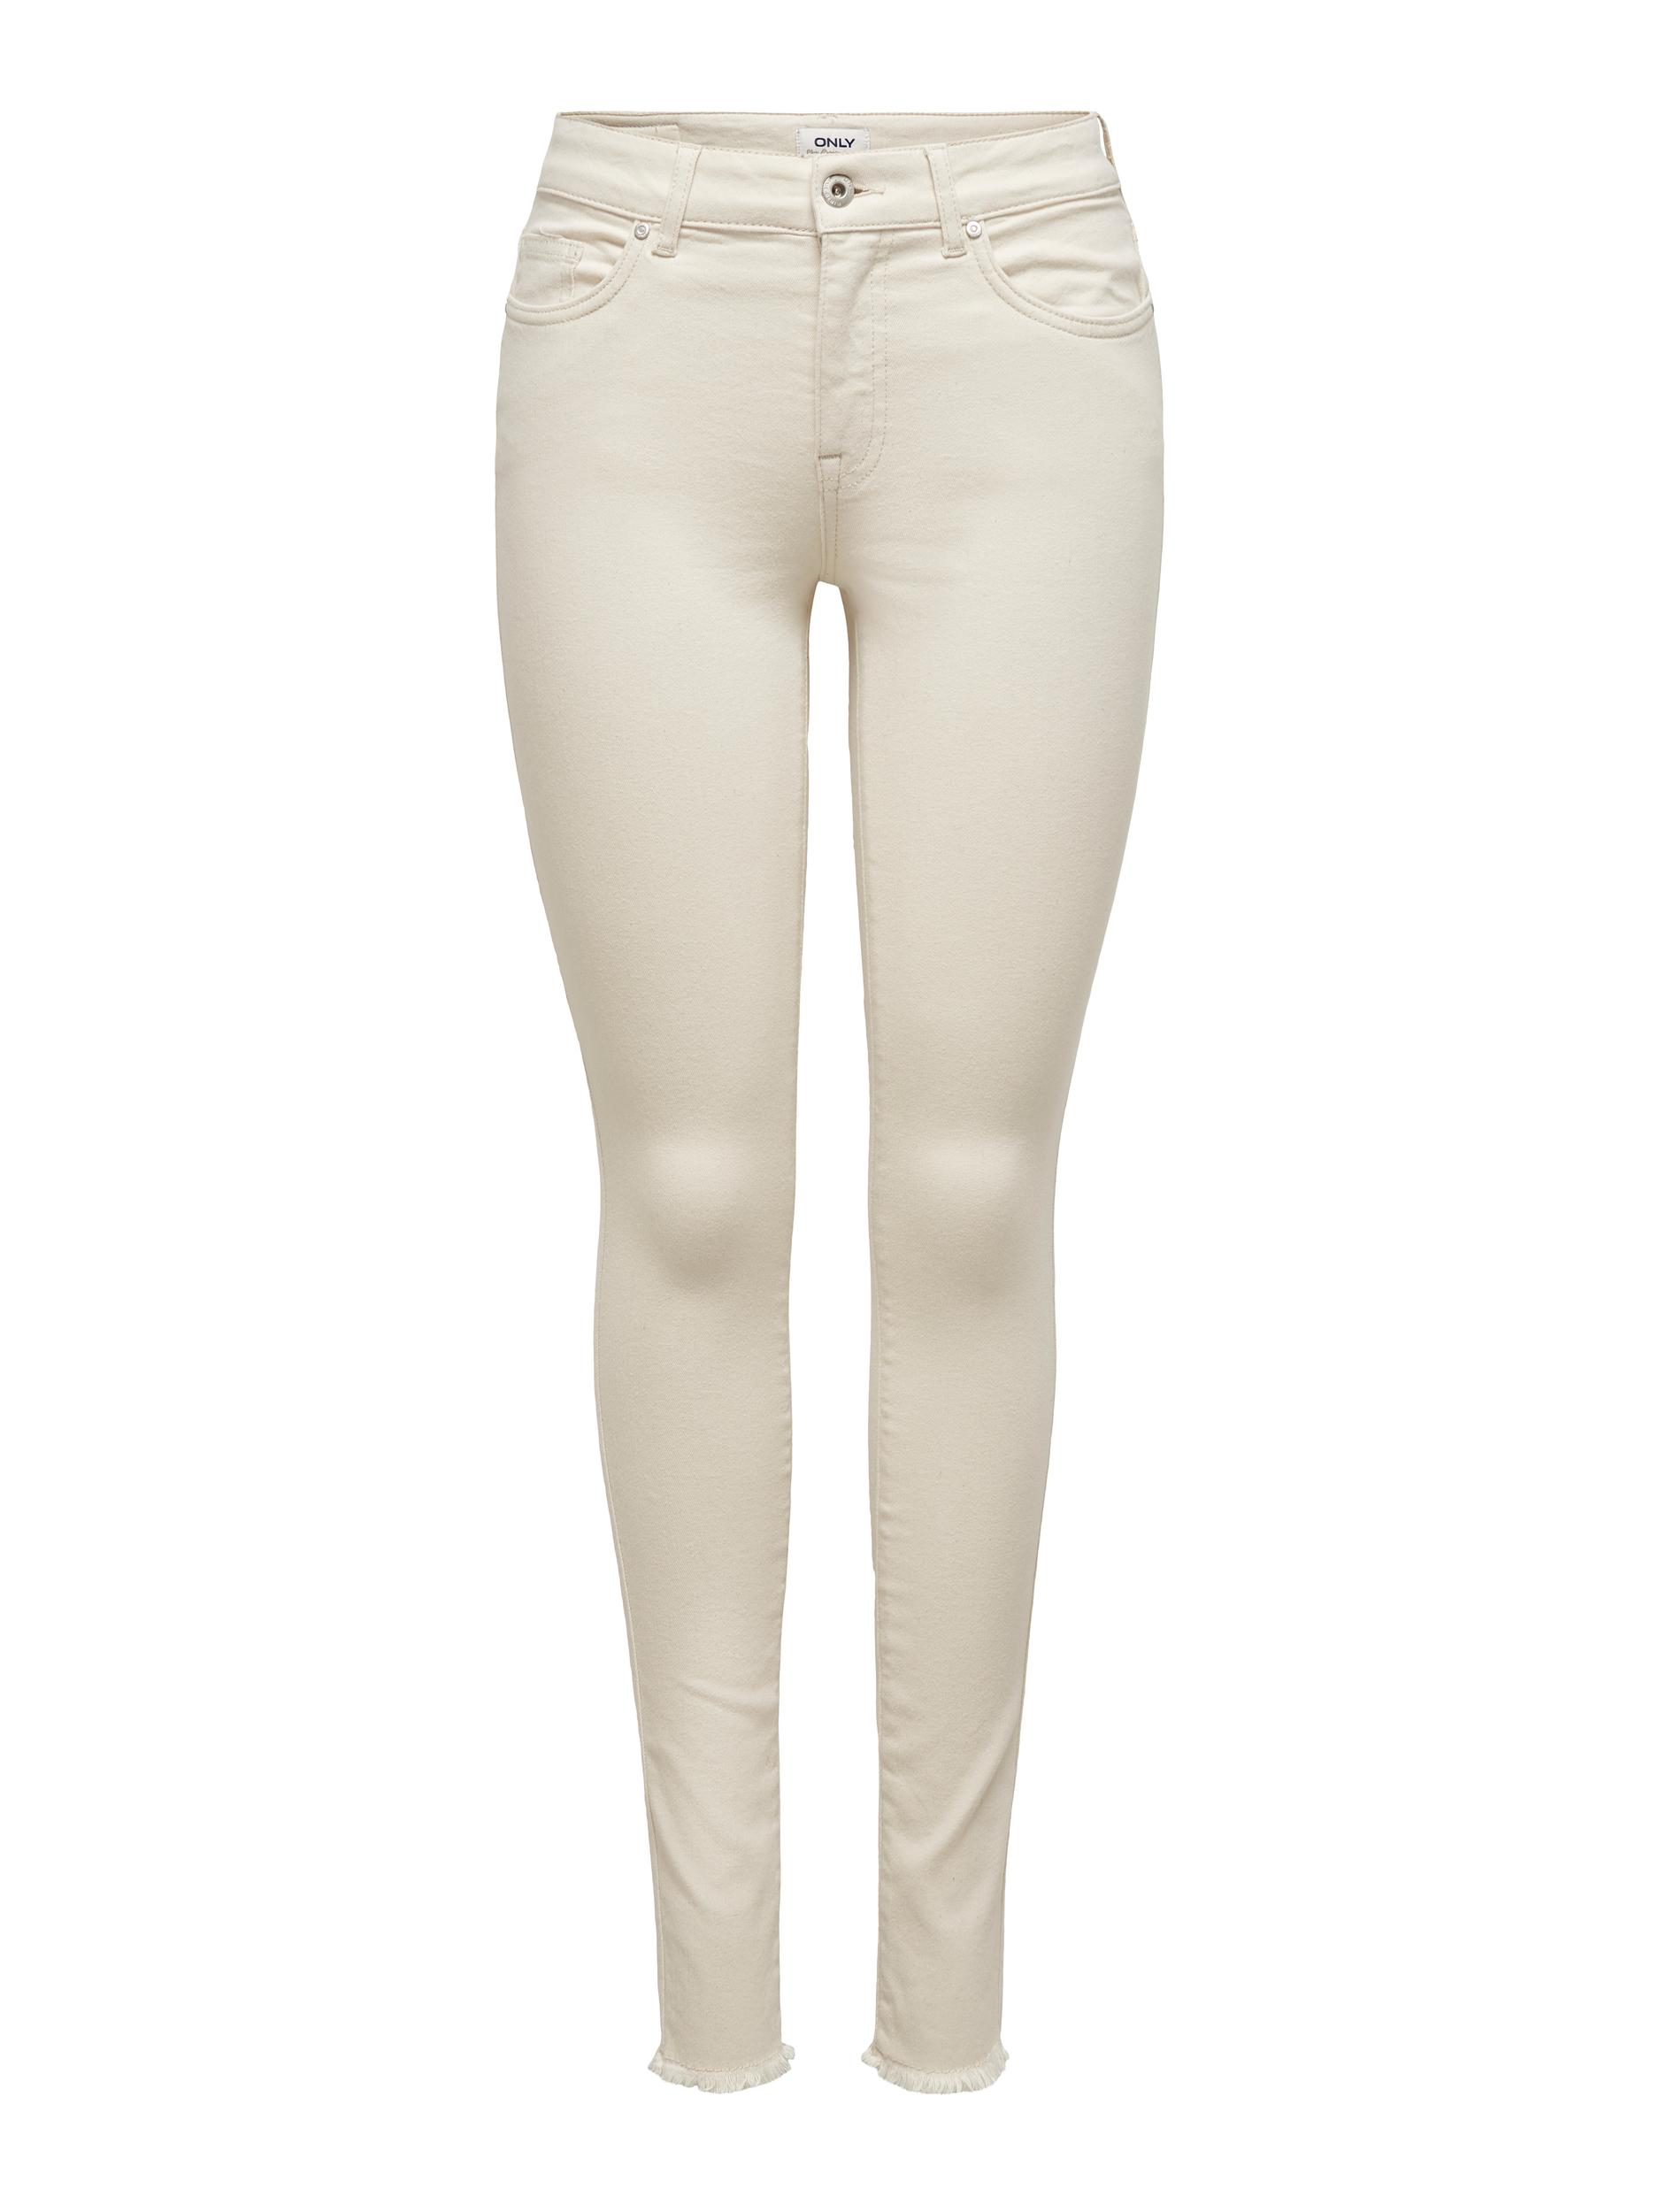 In-Mood Blush Life Ankle Jeans